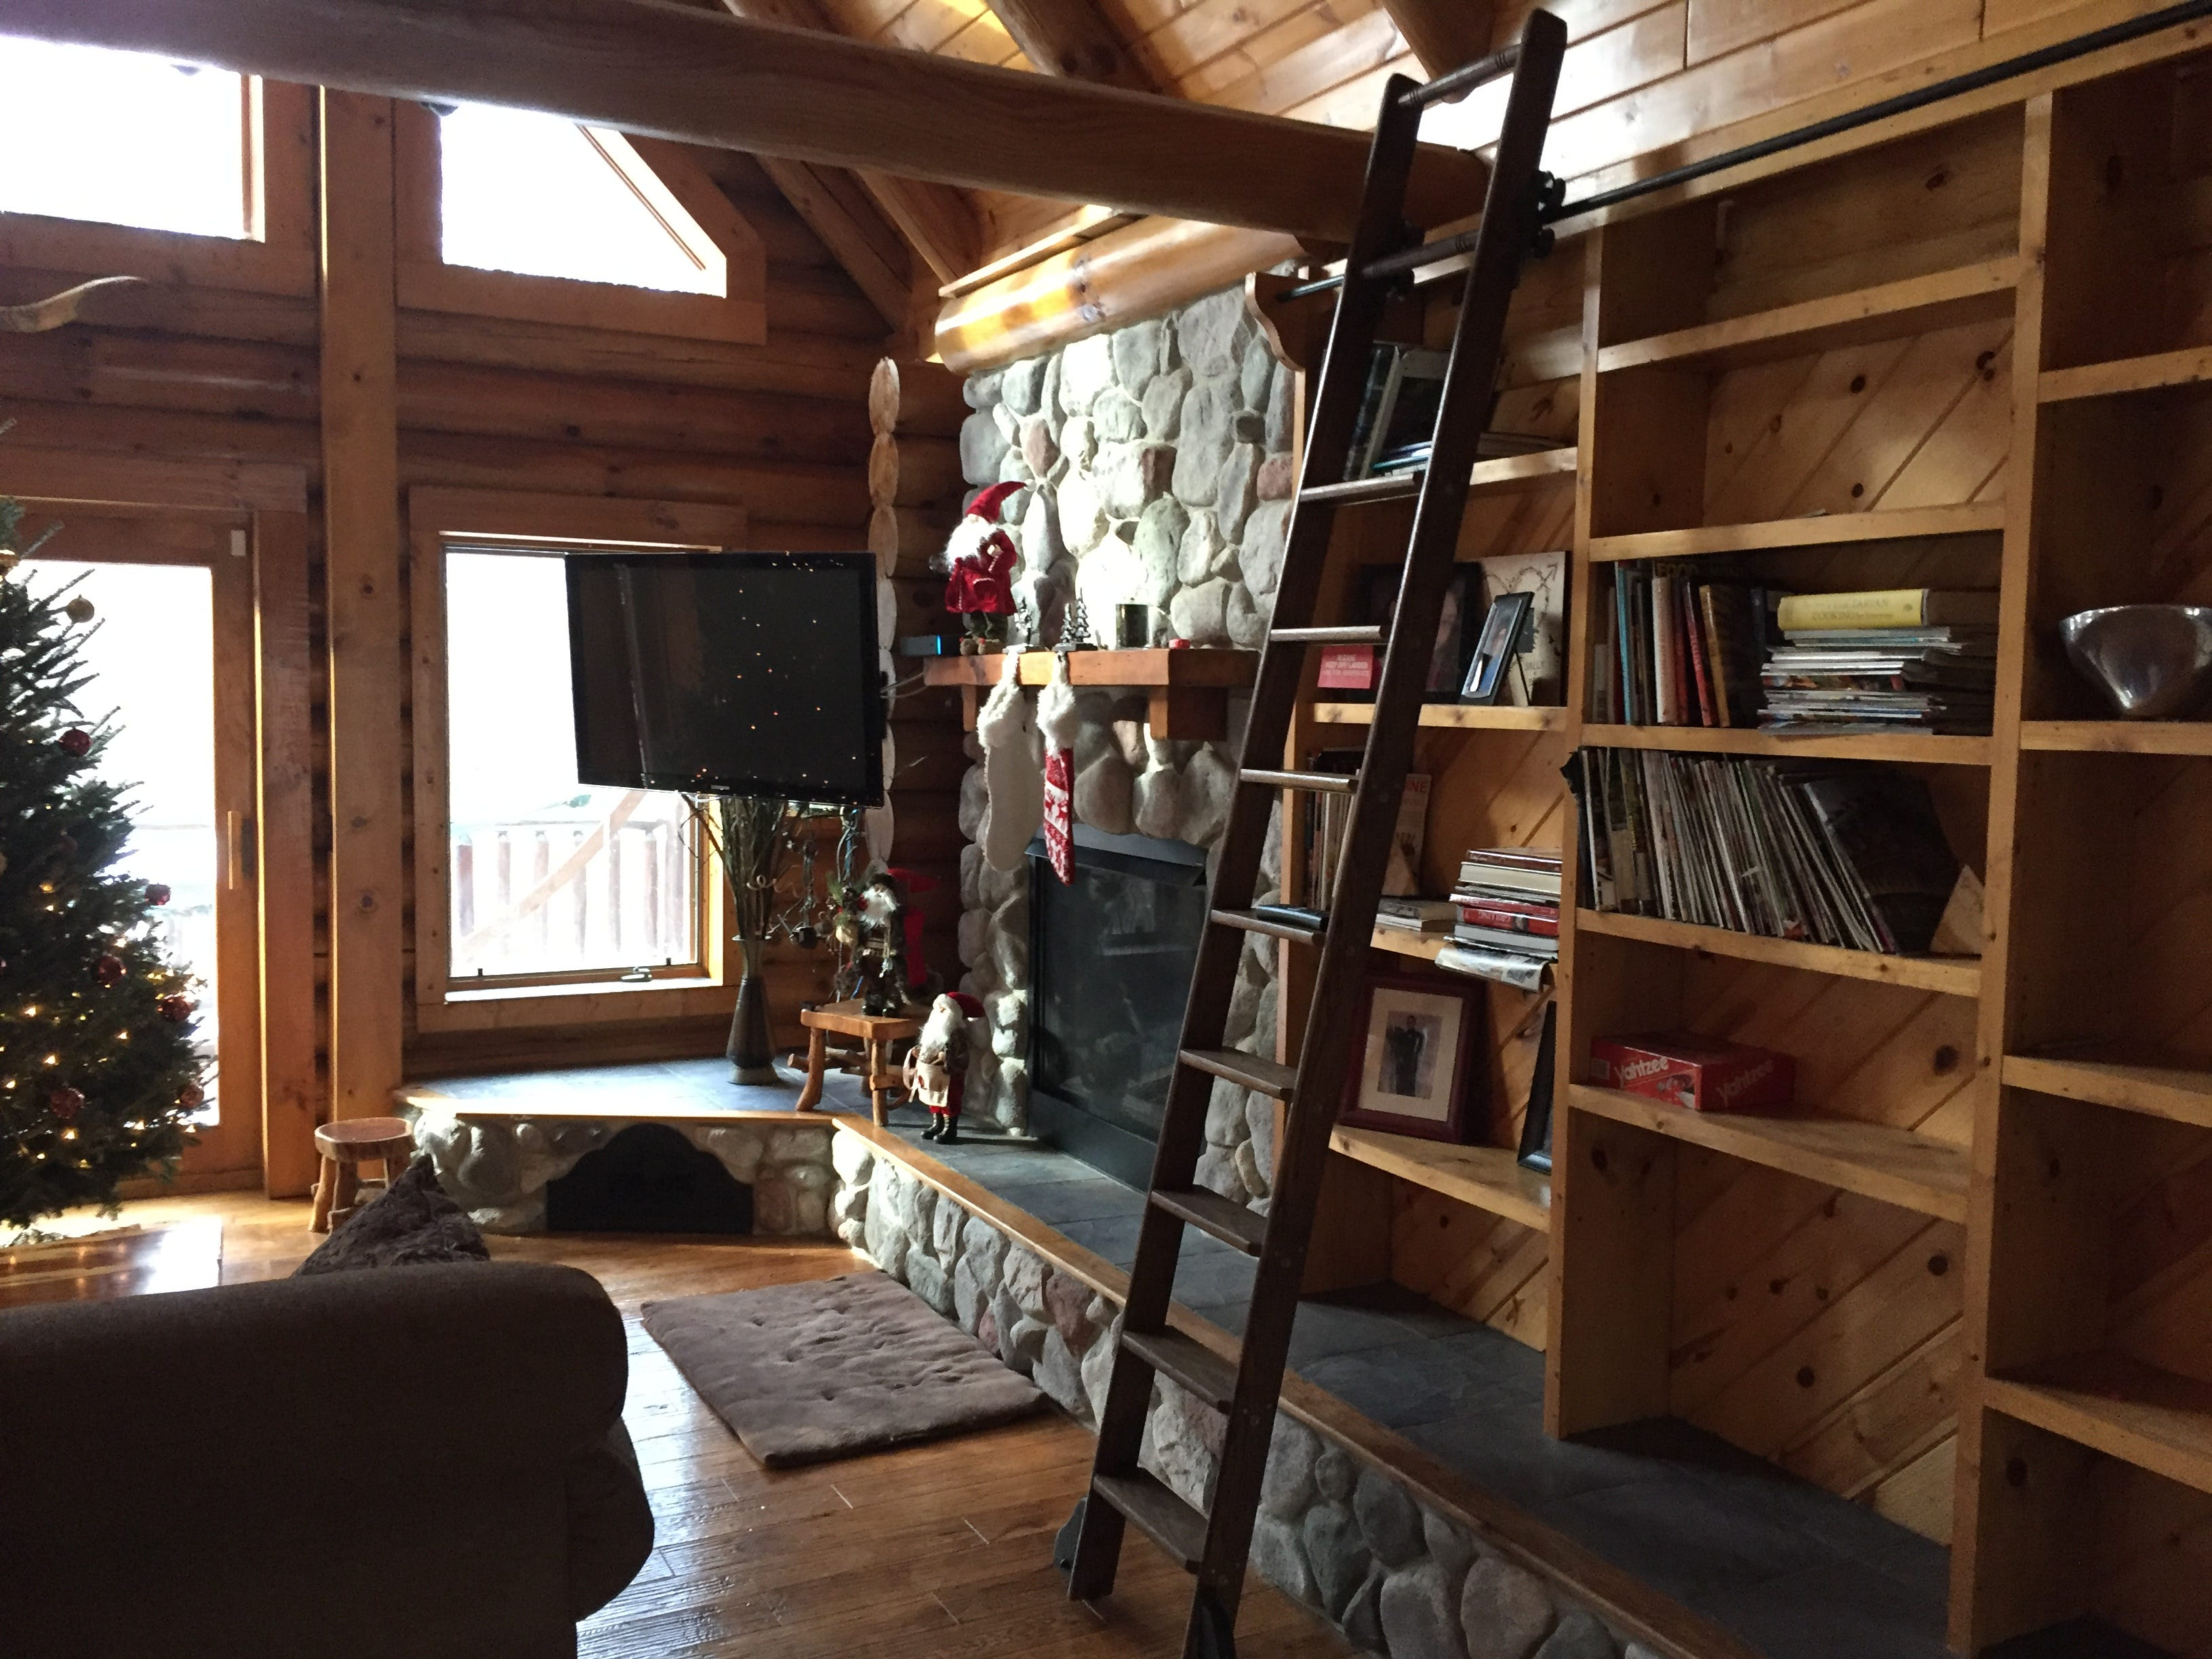 A bookshelf with a ladder and a see-through fireplace shared with the master bedroom are a few features of a log cabin home in Hartland Township, shown Wednesday, Nov. 21, 2018.